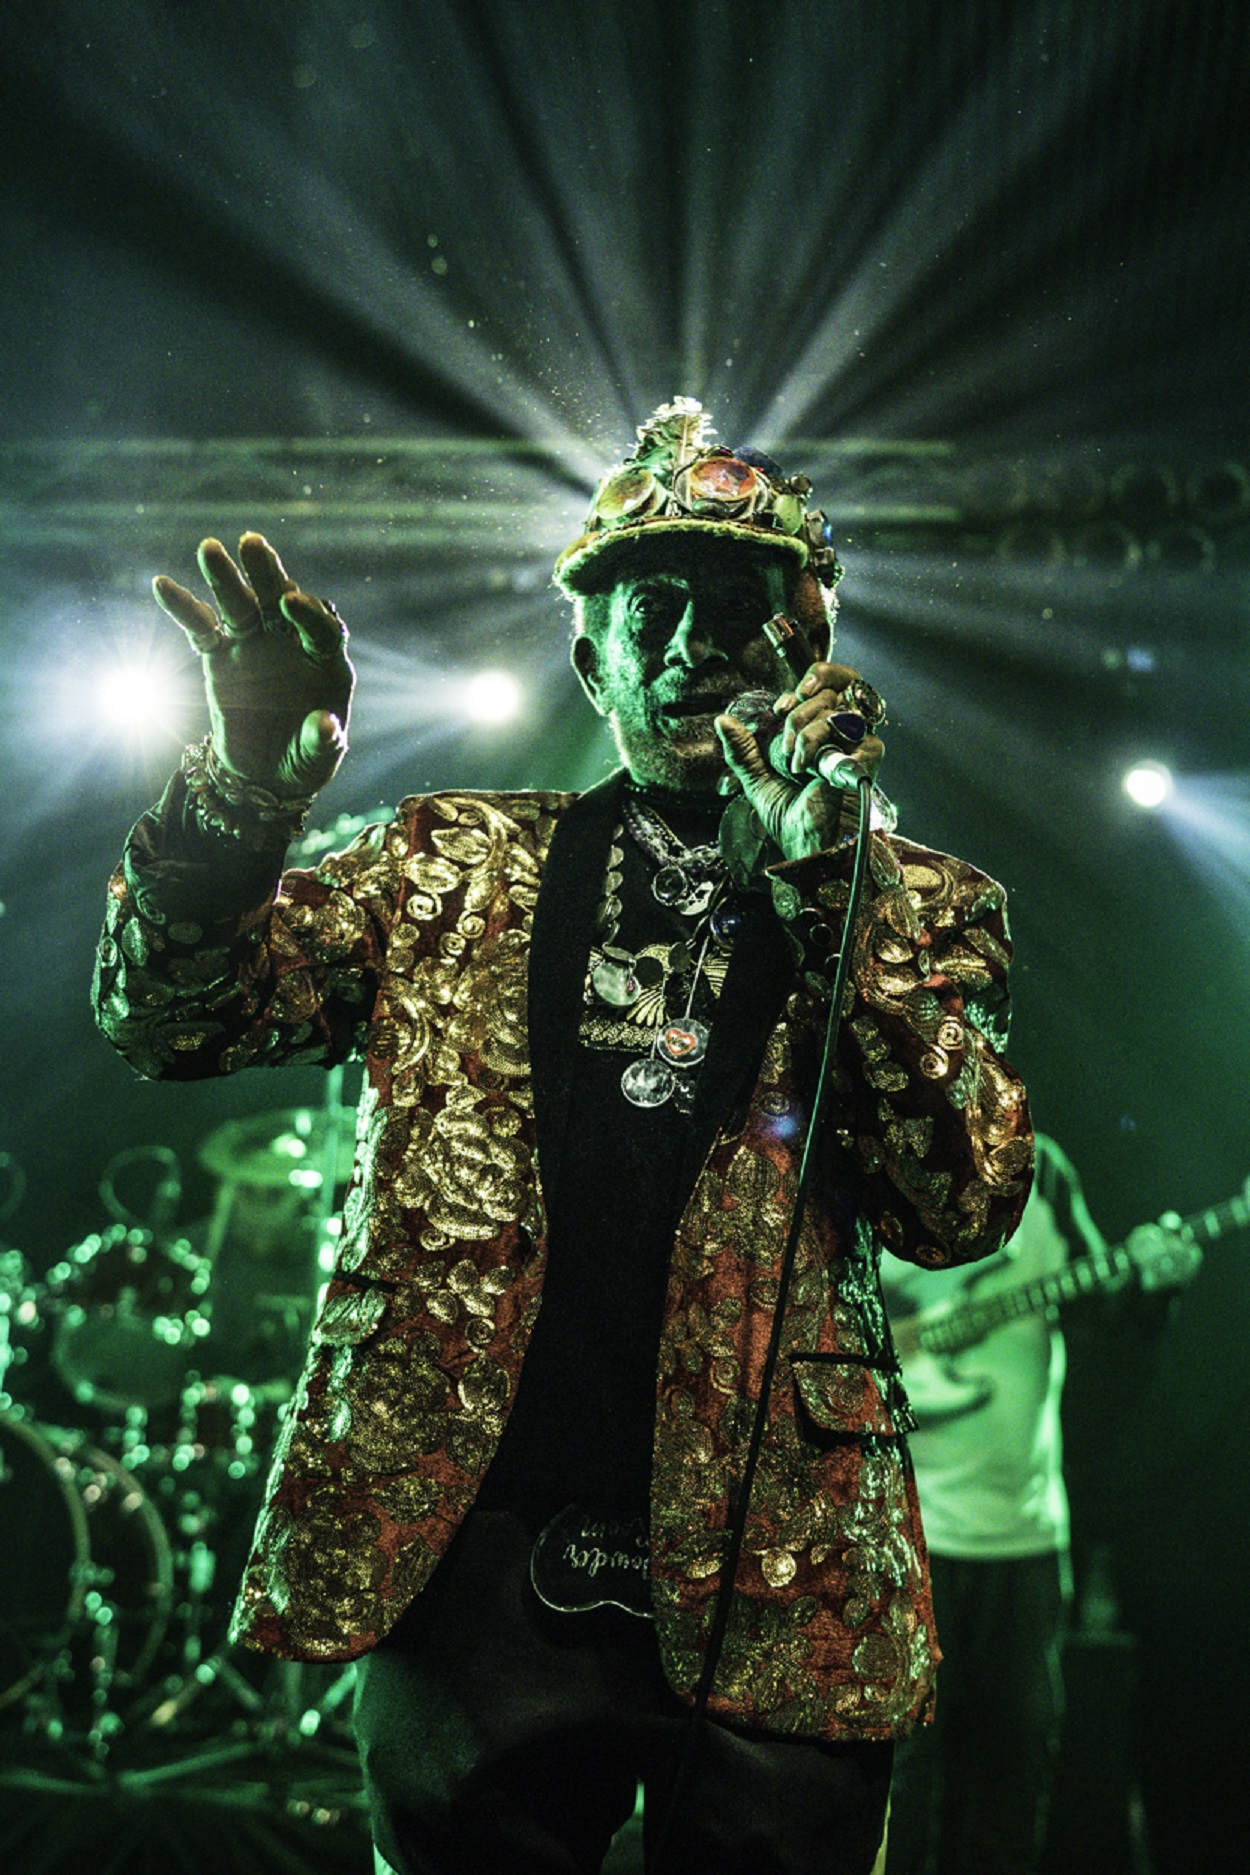 LIVE/190404-lee-scratch-perry-but-madrid-review/190404-lee-scratch-perry-closeup3.jpg